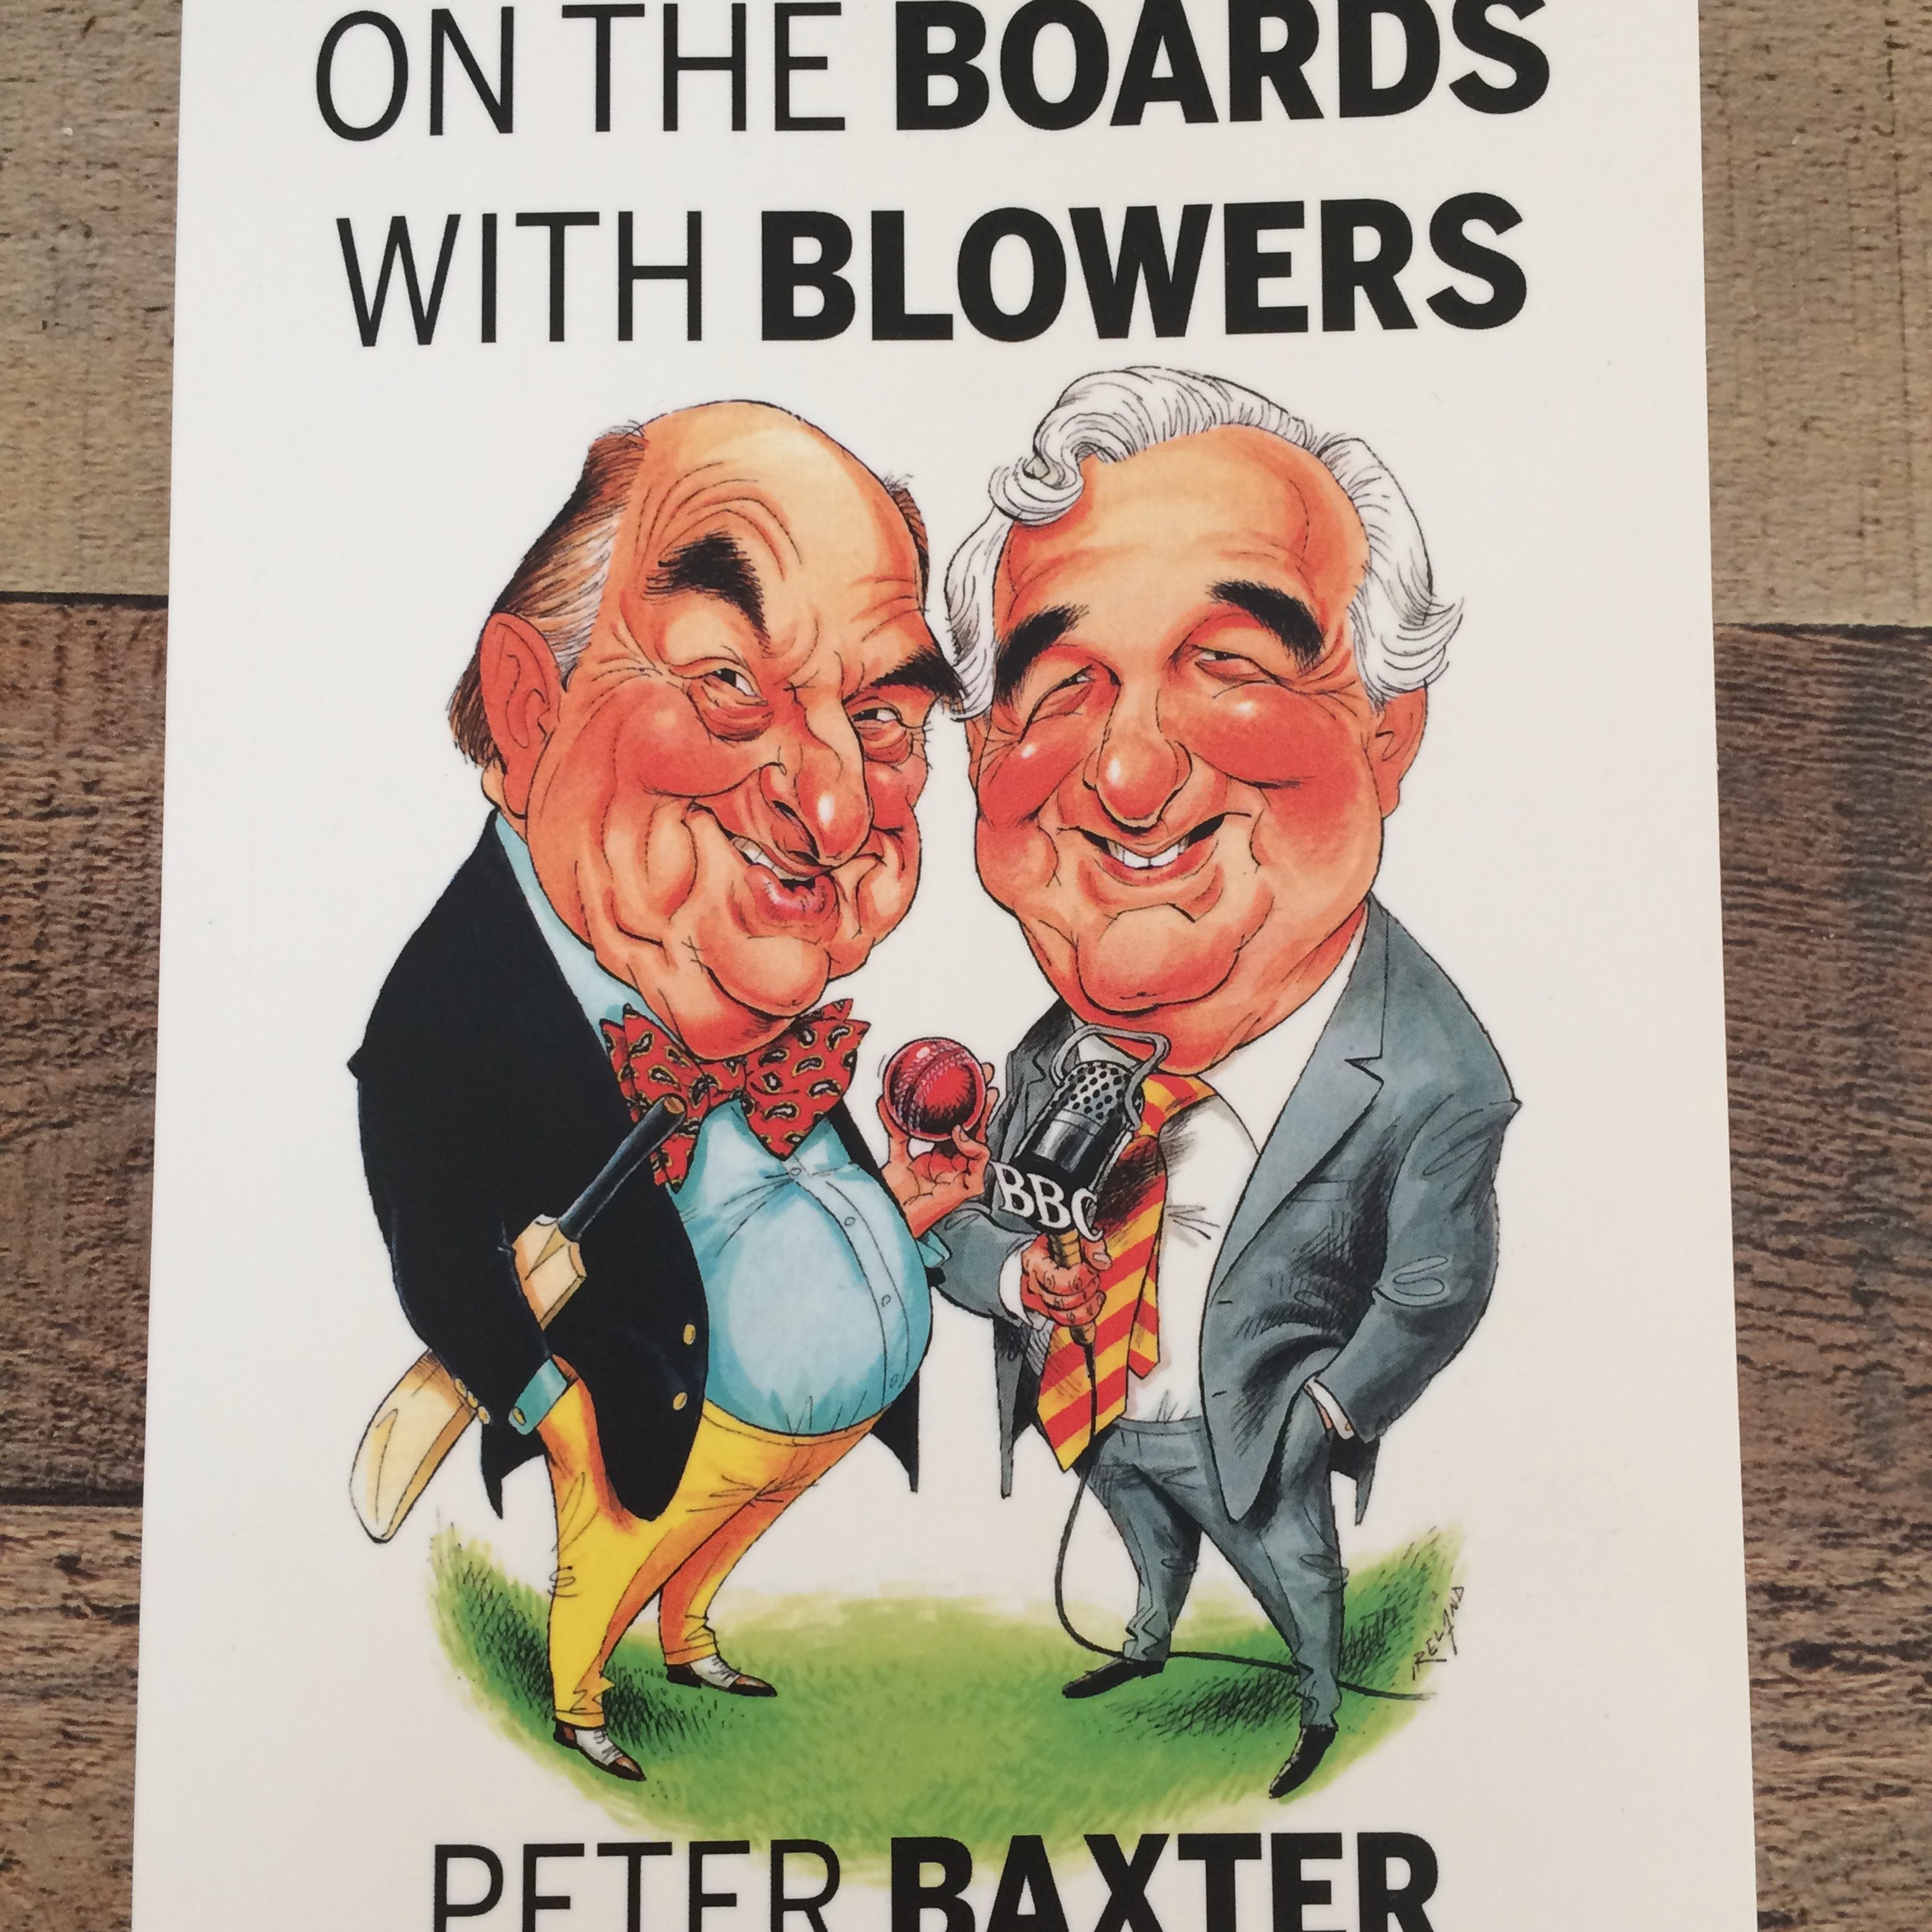 """Episode 1 Peter Baxter """"ON THE BOARDS WITH BLOWERS"""""""